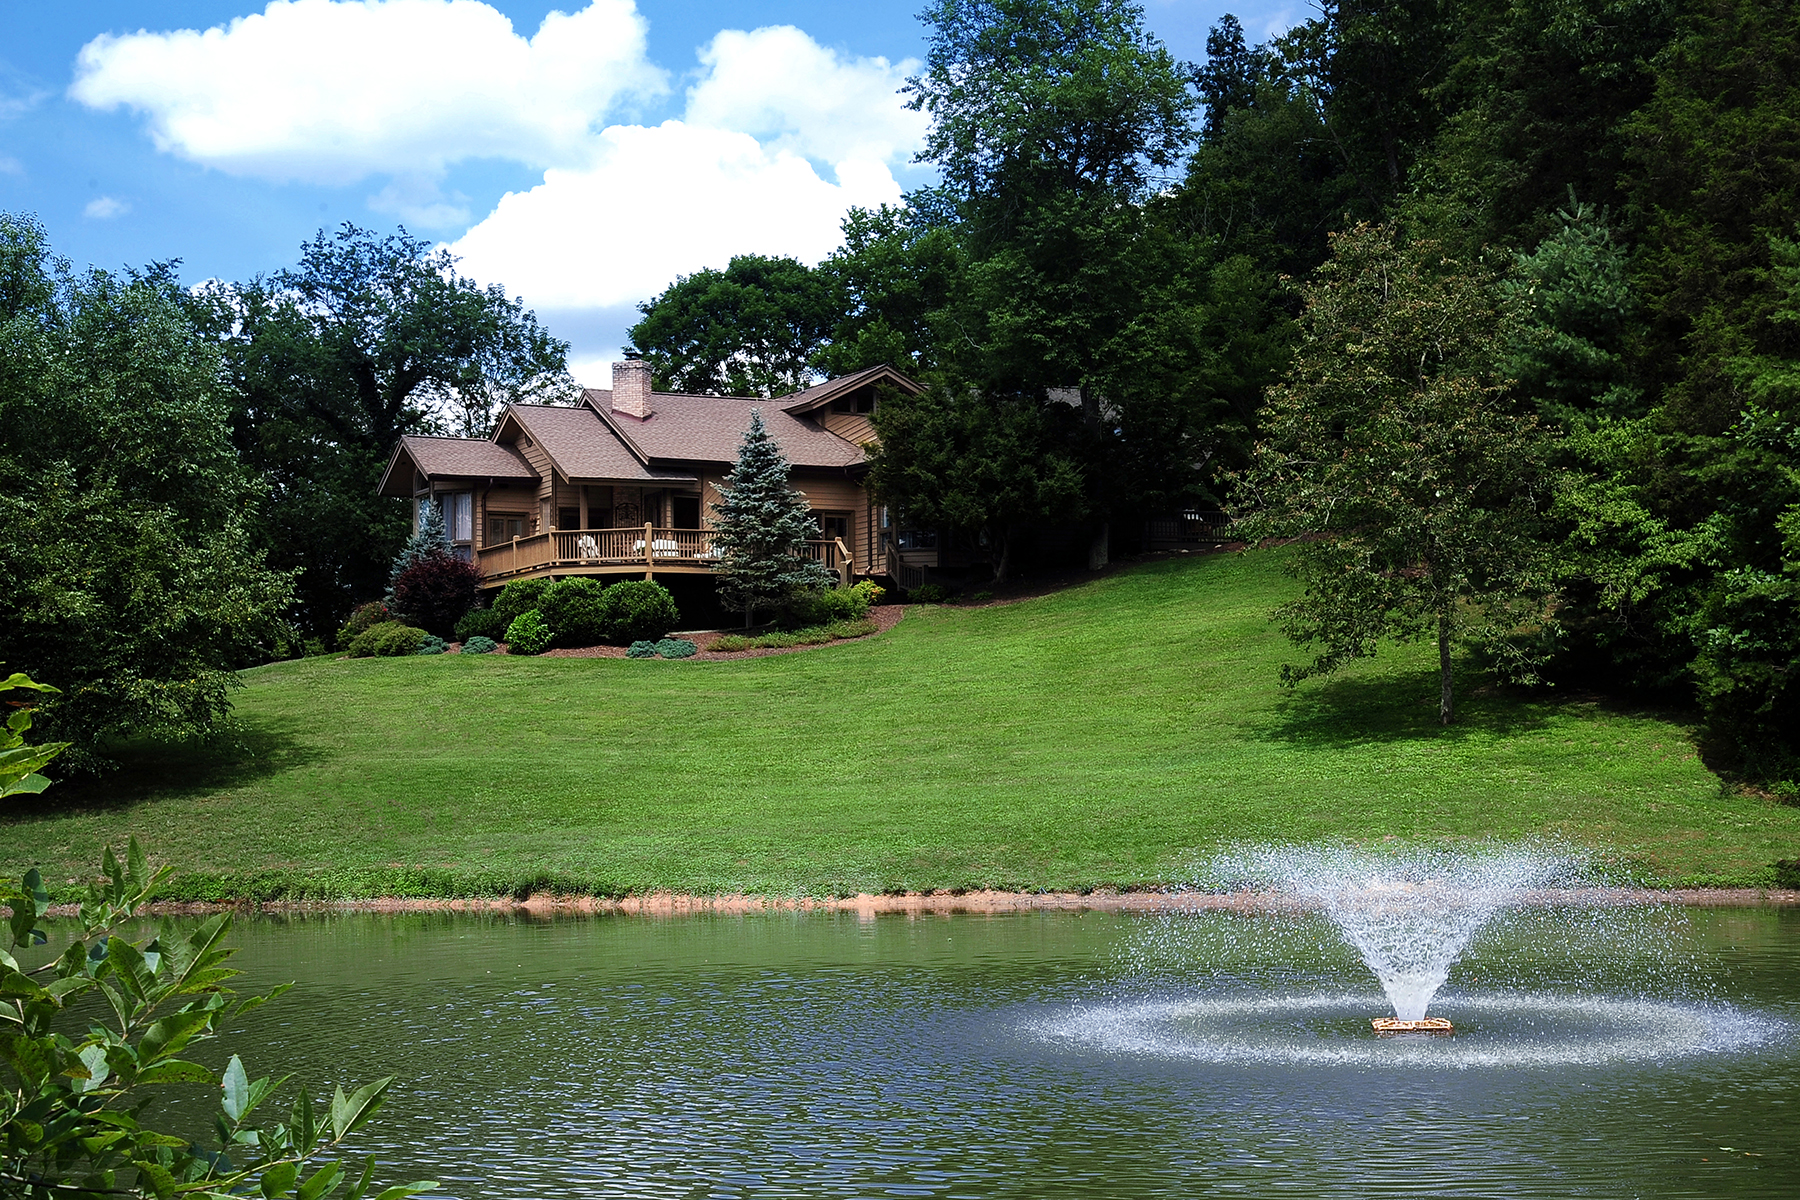 Single Family Home for Sale at 409 ACRE ESTATE WITH 4 HOUSES IN BRISTOL, TN 485 Gentry Ln Bristol, Tennessee, 37620 United States